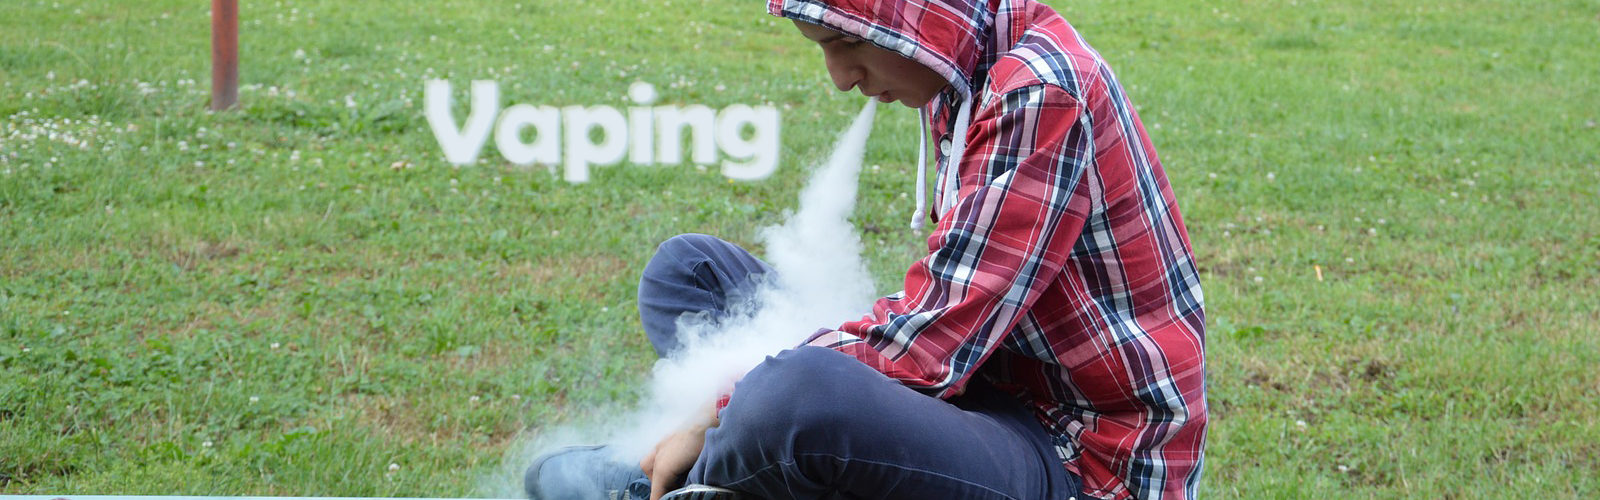 Man vaping on a park bench